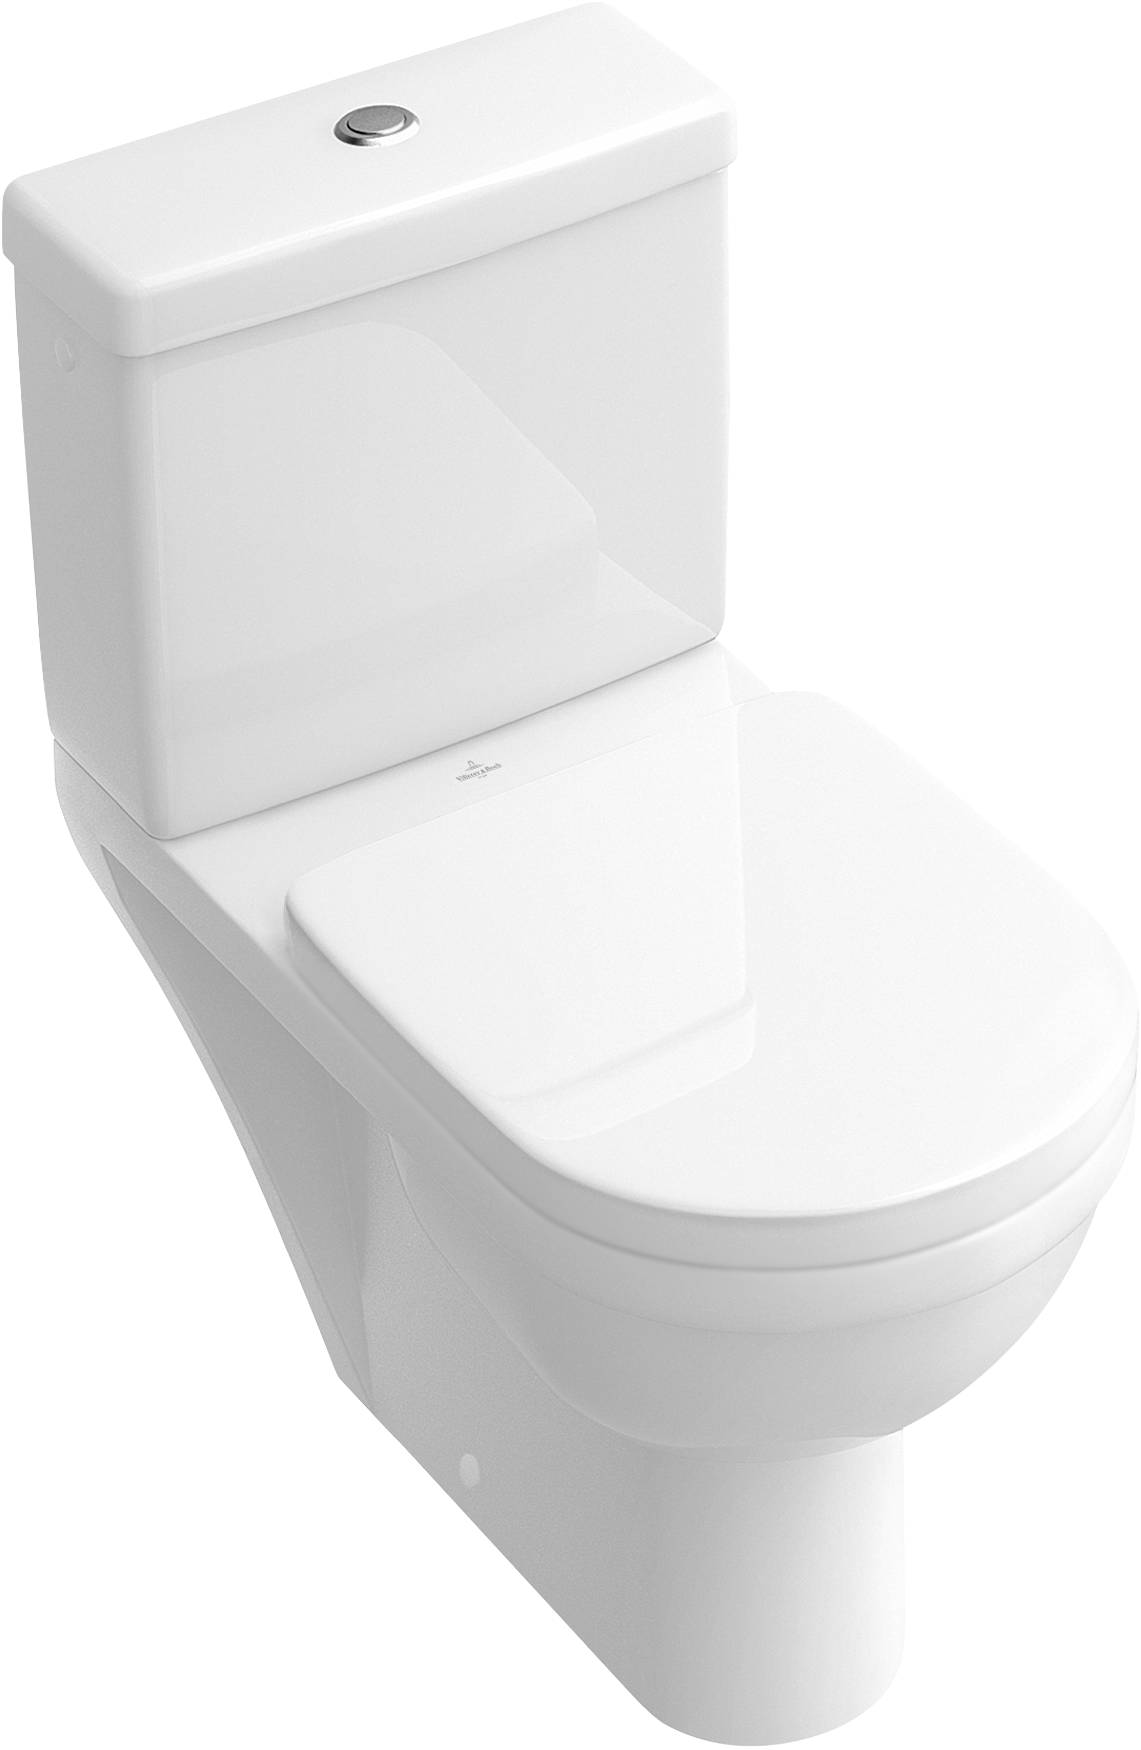 Architectura Floor standing close coupled WC suites. WCs  Villeroy   Boch